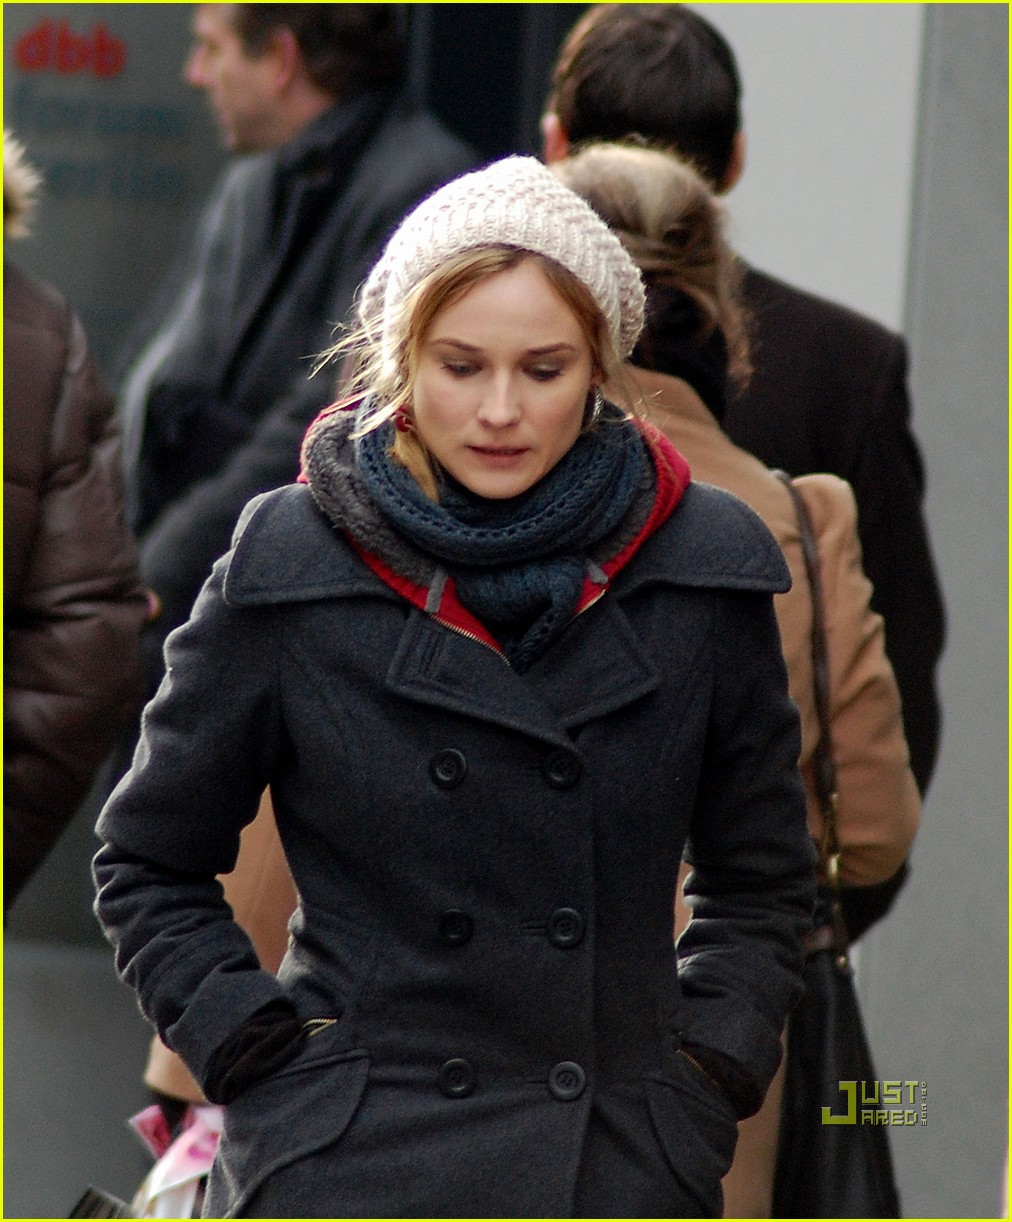 diane kruger unknown white male 03